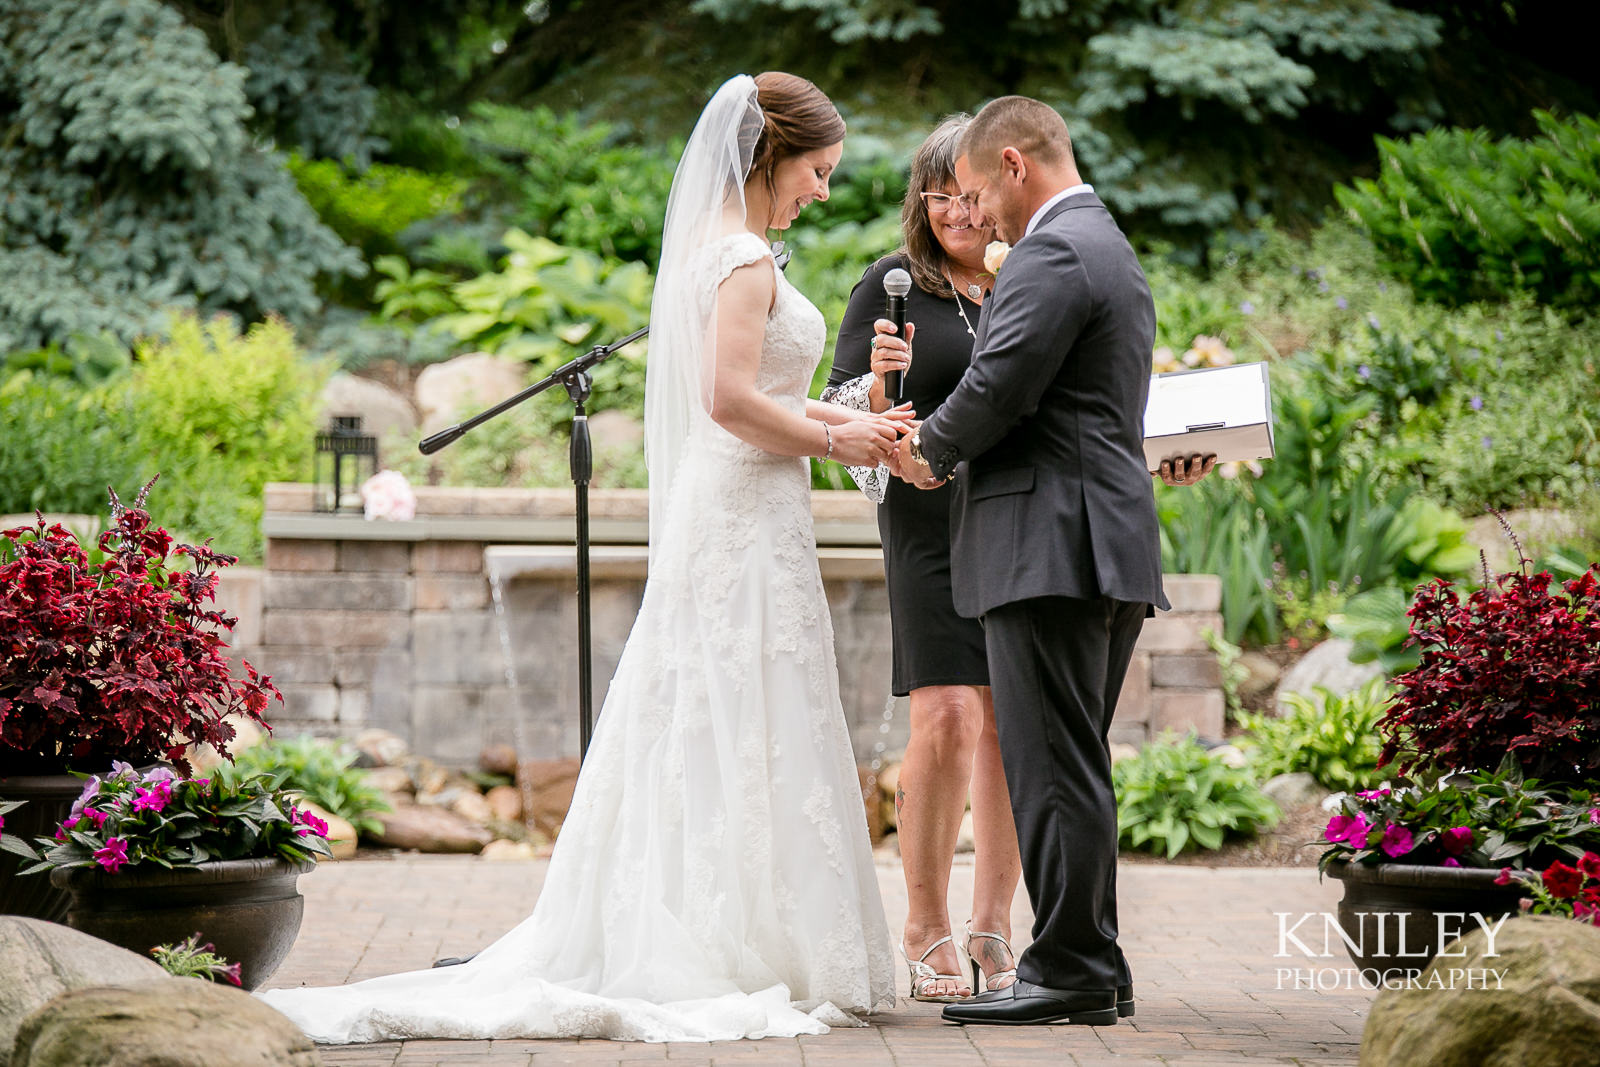 056 - Ravenwood Golf Club wedding pictures - Rochester NY - Kniley Photography - IMG_9081.jpg